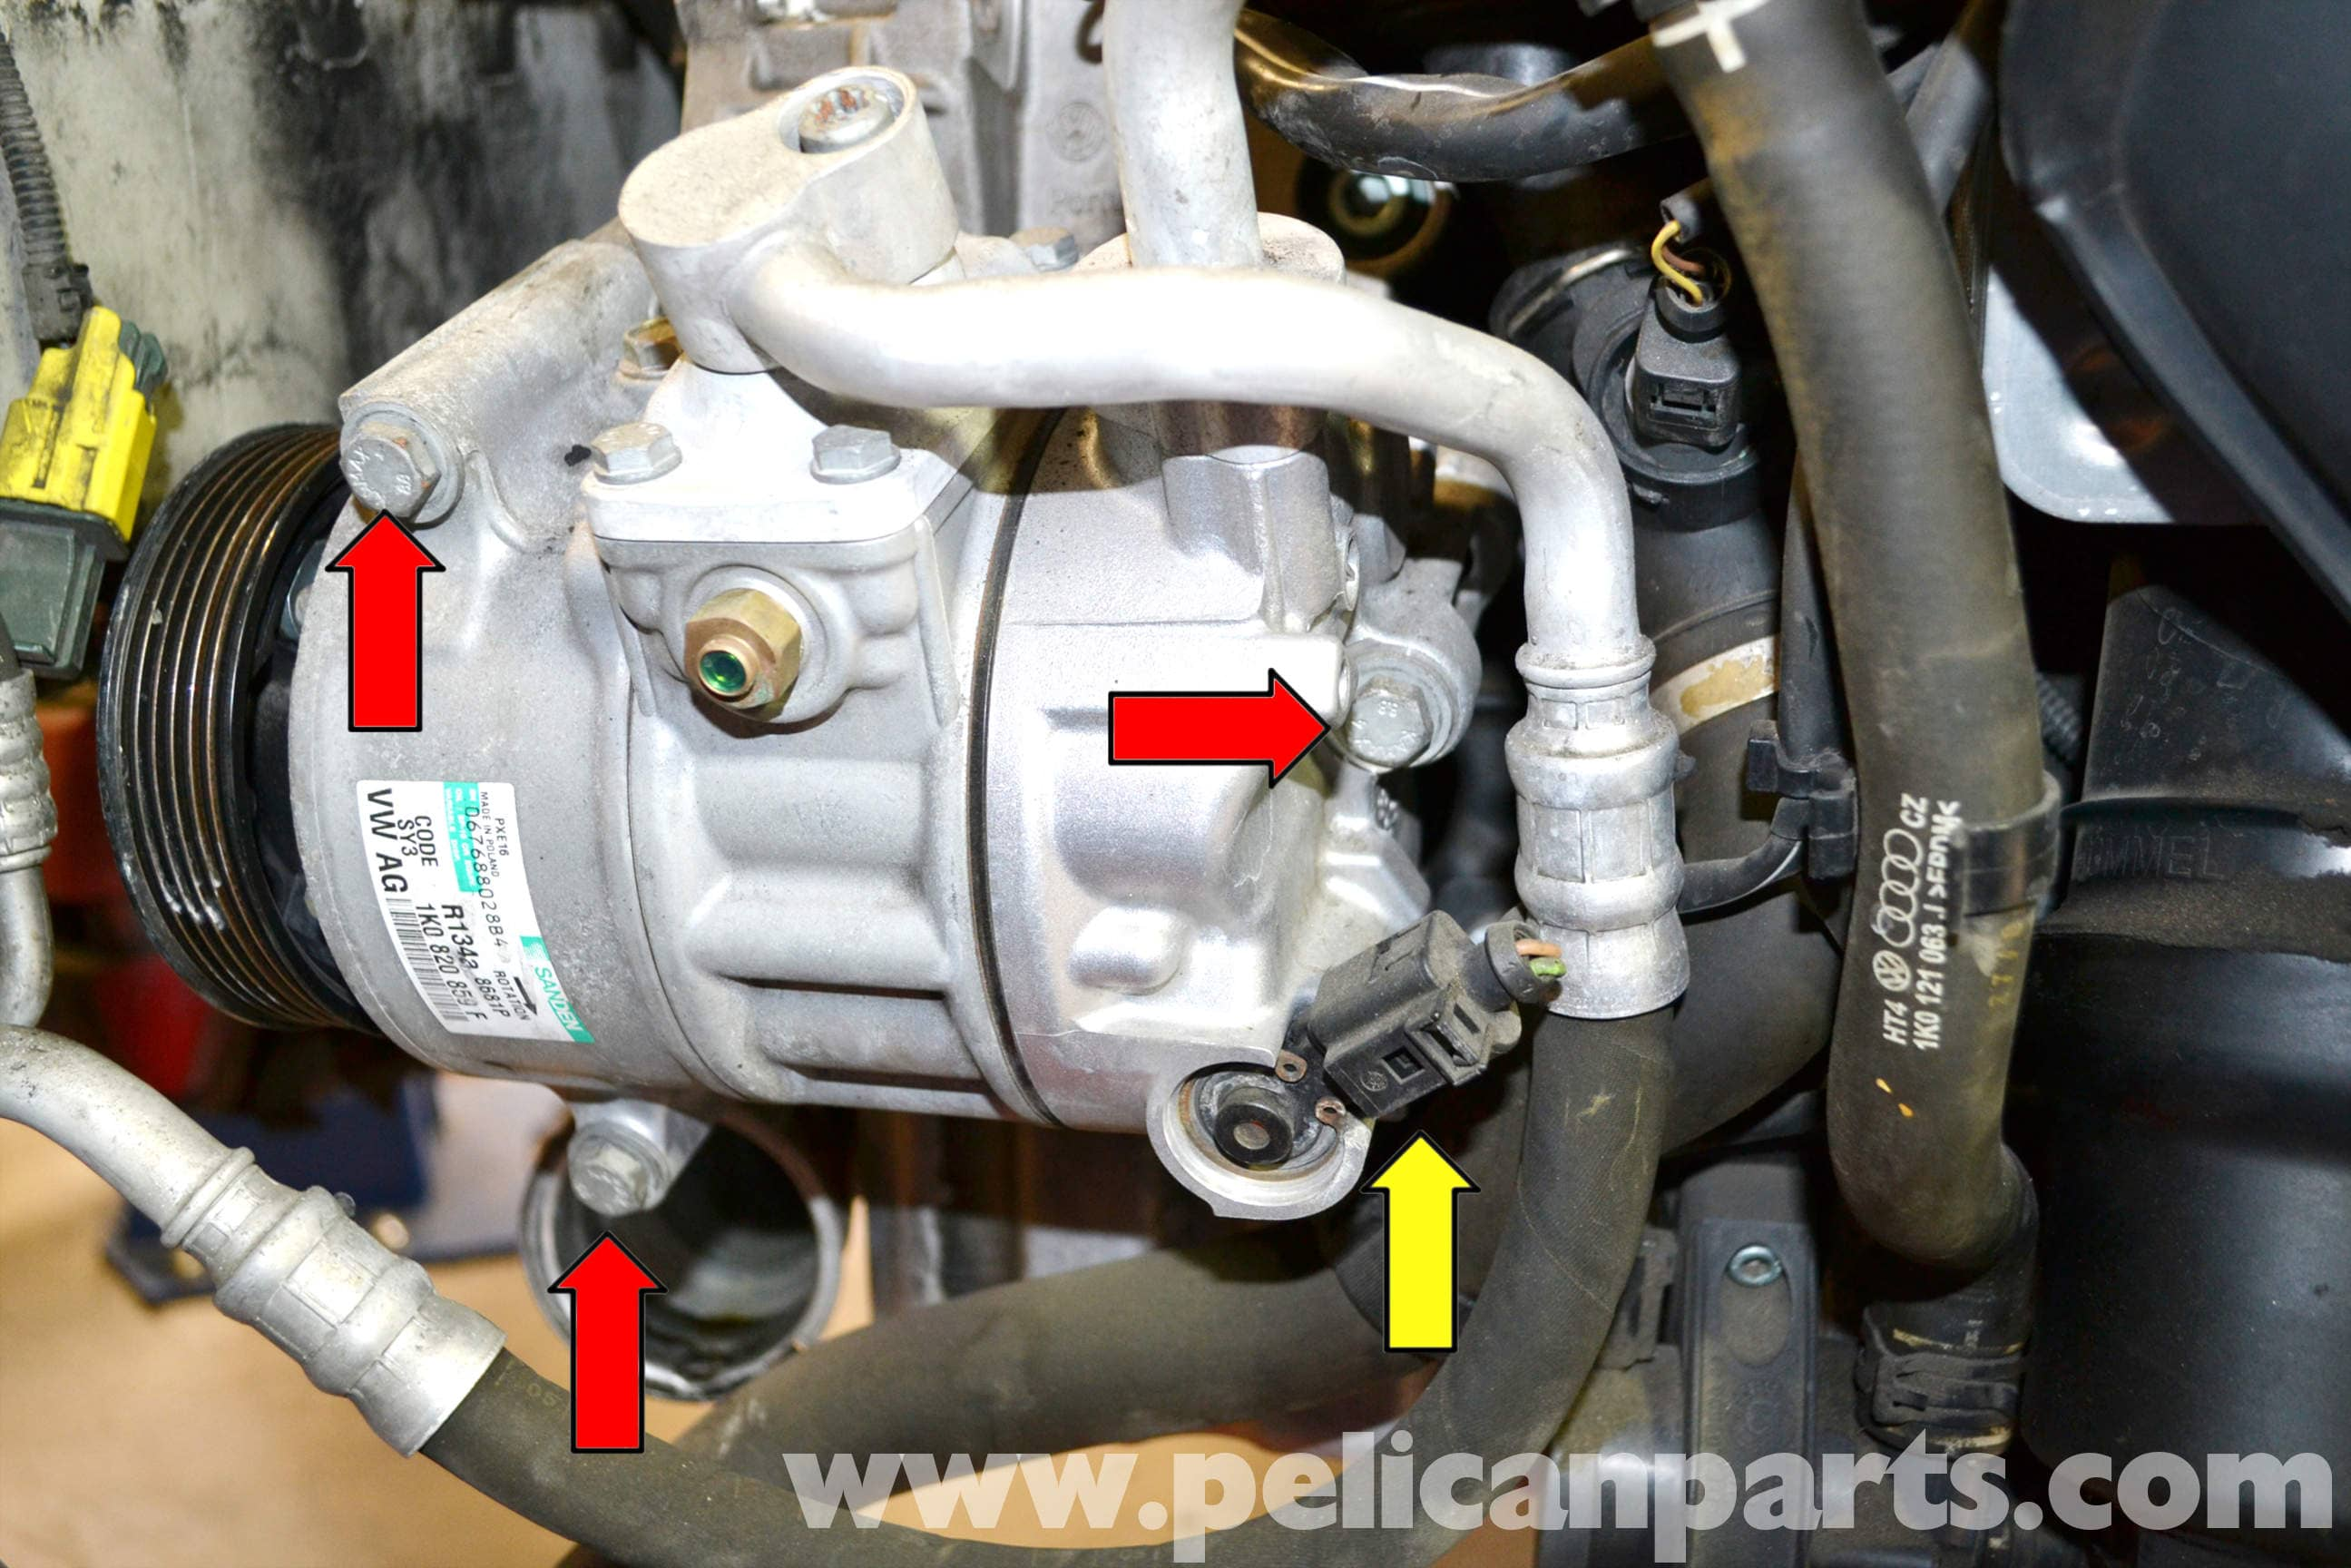 Replacing belt tensioner price